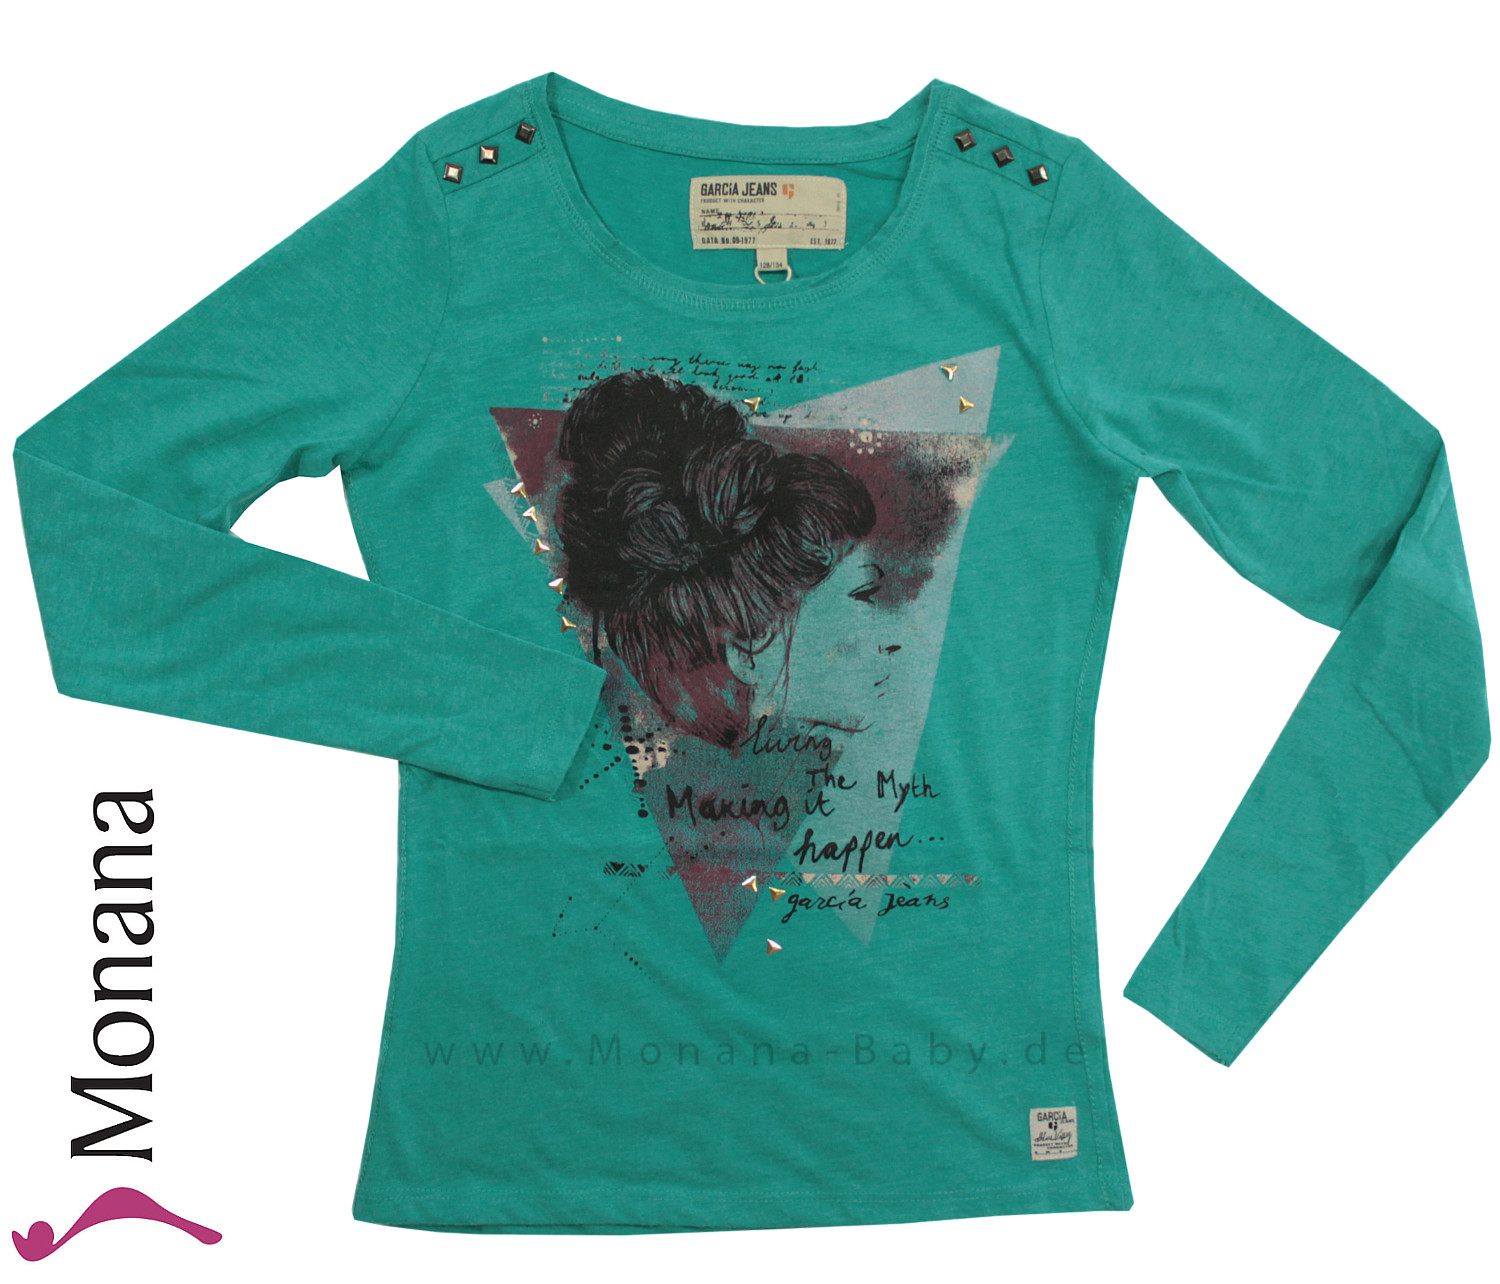 Garcia Shirt Bright Peacock Girl<br>Größe: 152/158, 164/170